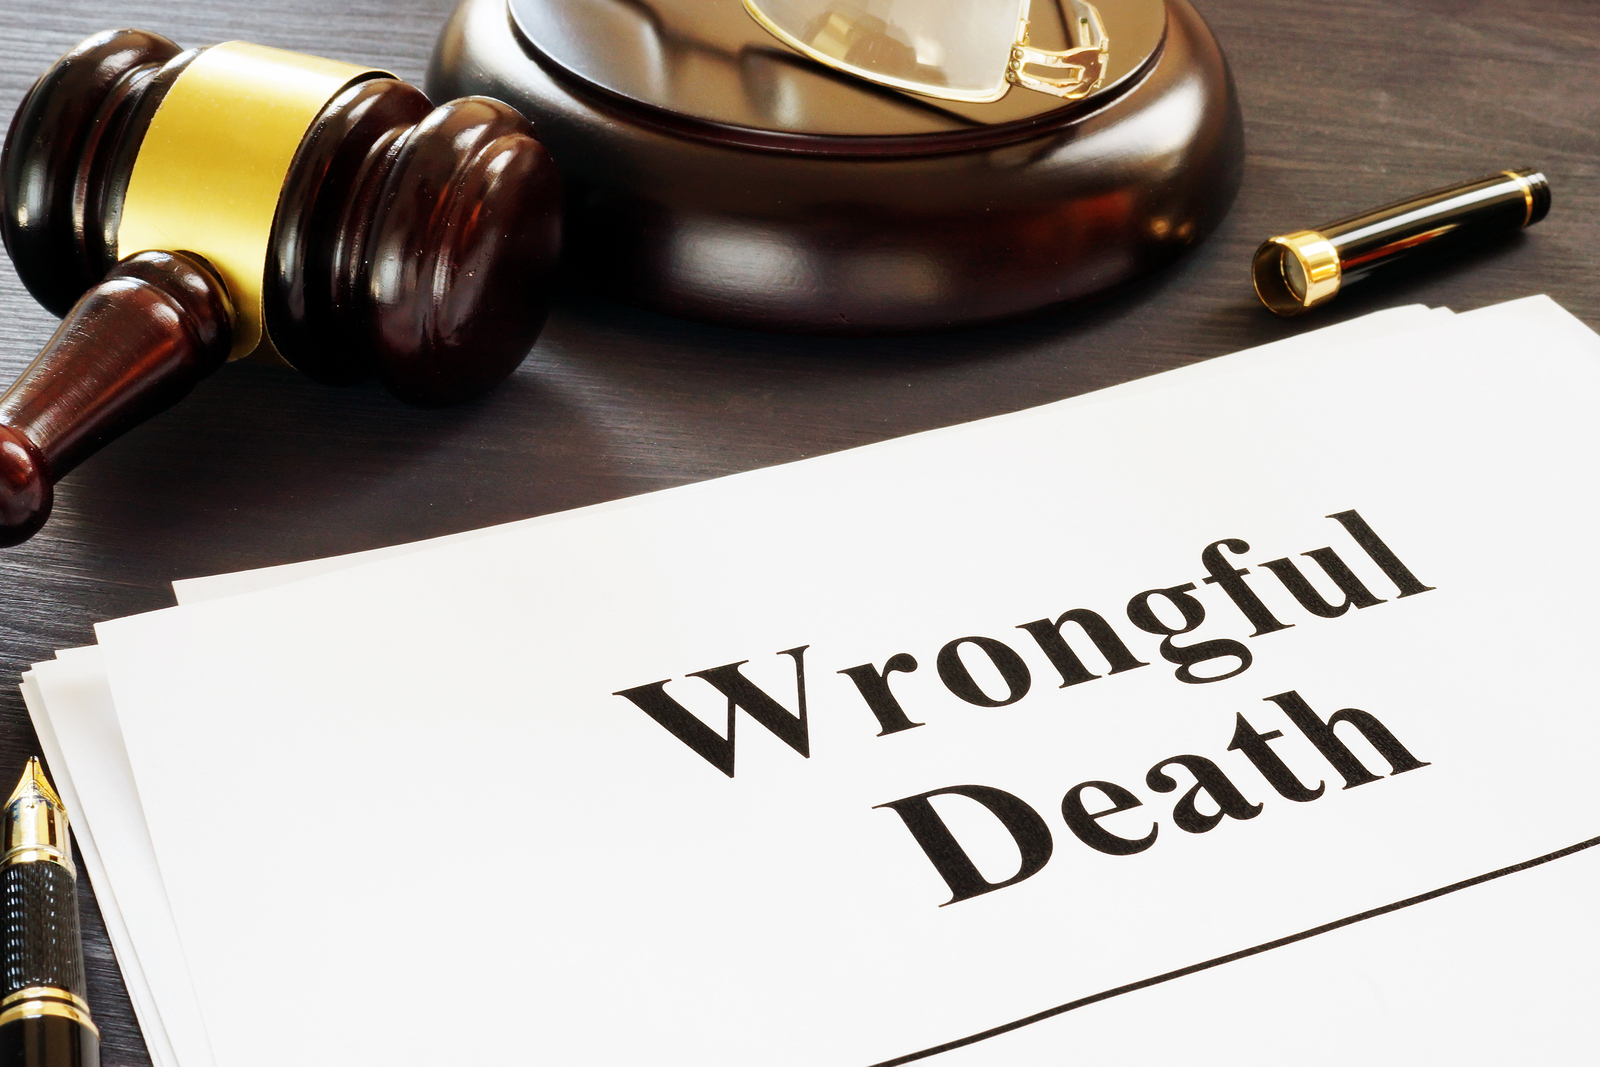 picture of Wrongful Death Report And Gavel In A Court